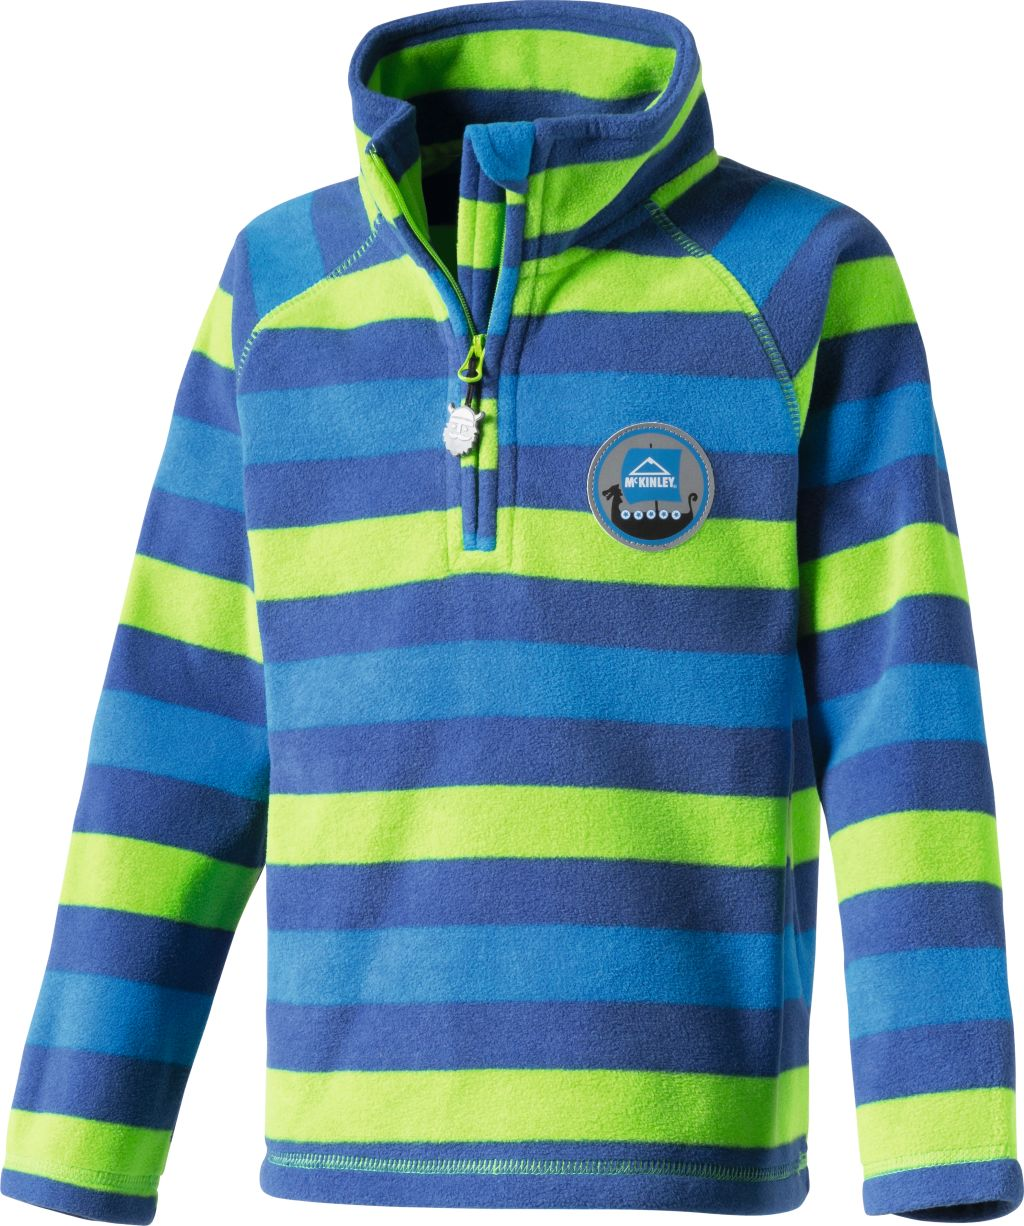 McKINLEY Rilly fleece baby